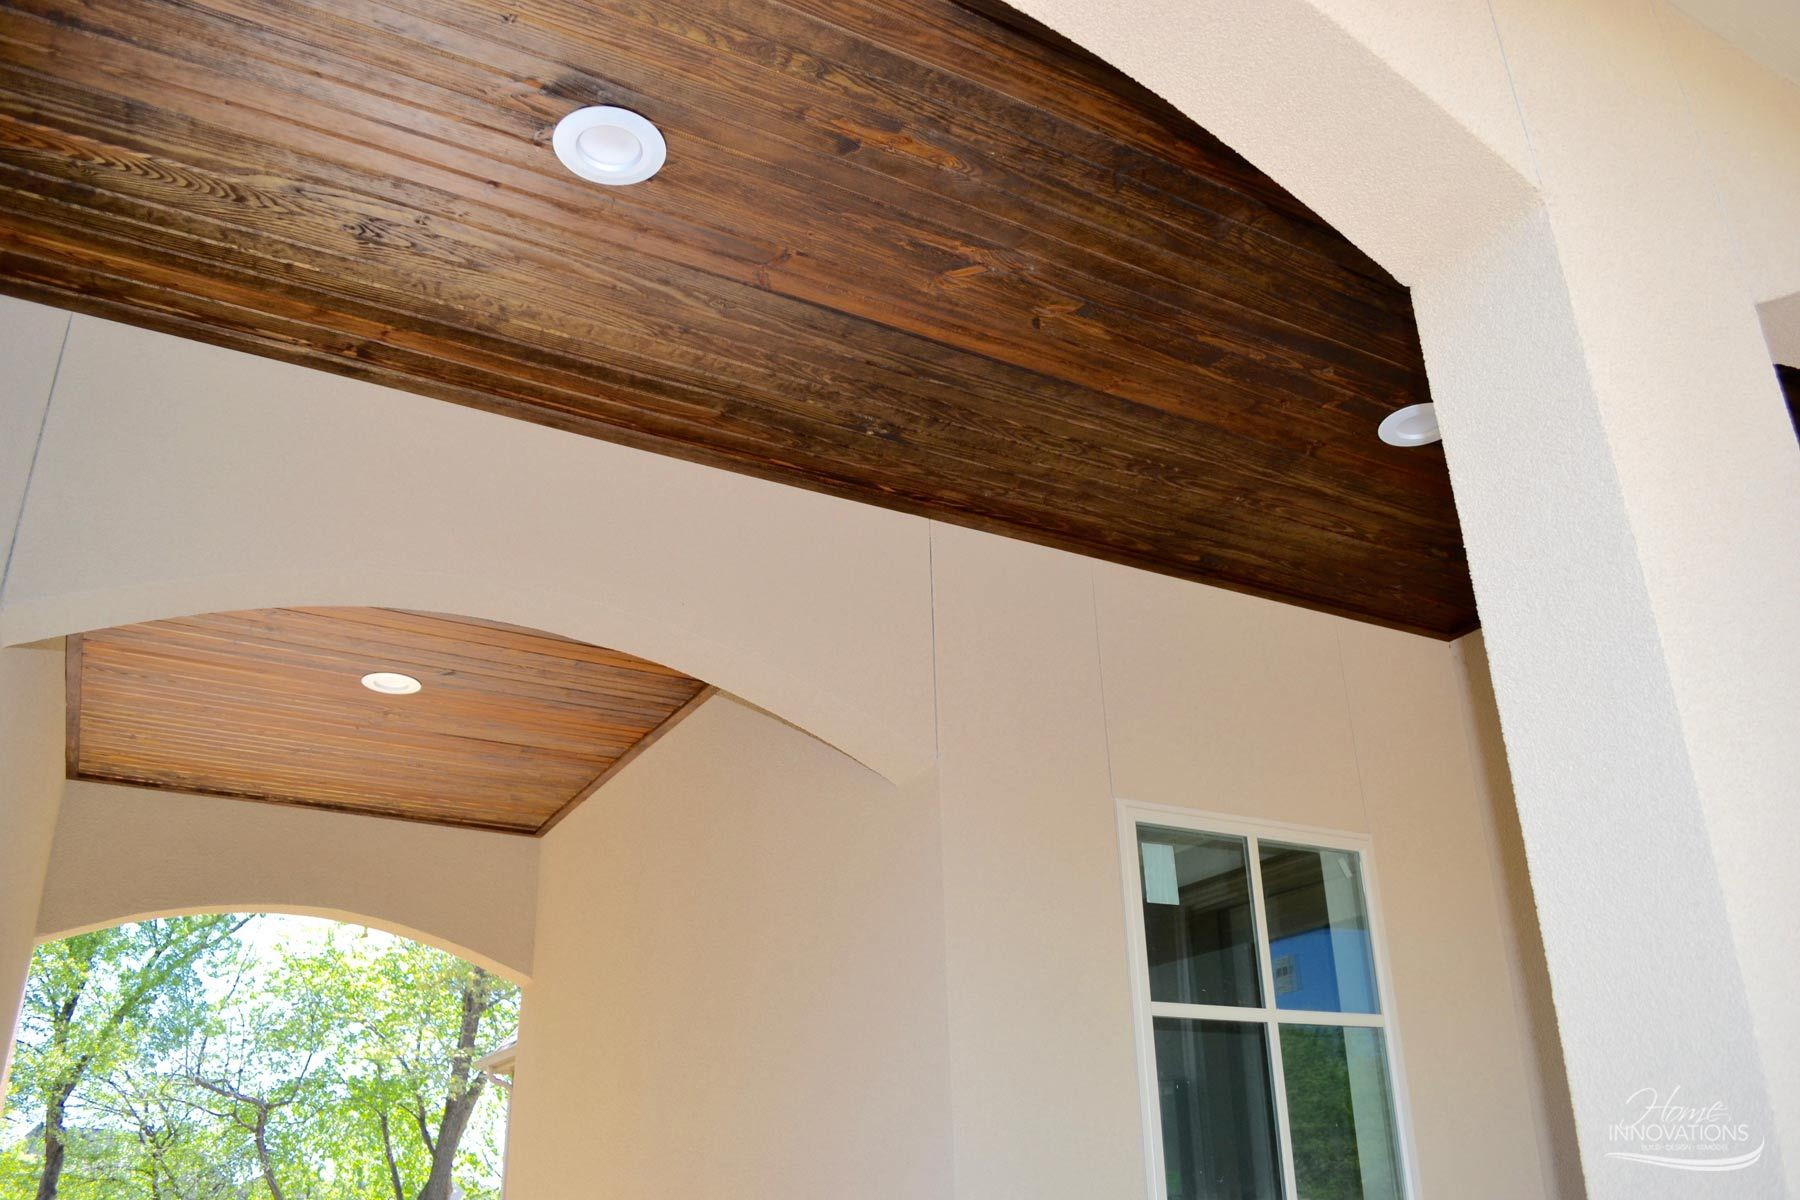 Tongue And Groove Ceiling With Recessed Lighting In Outdoor Breezeway Bar Ceilings New Home Construction Home Construction